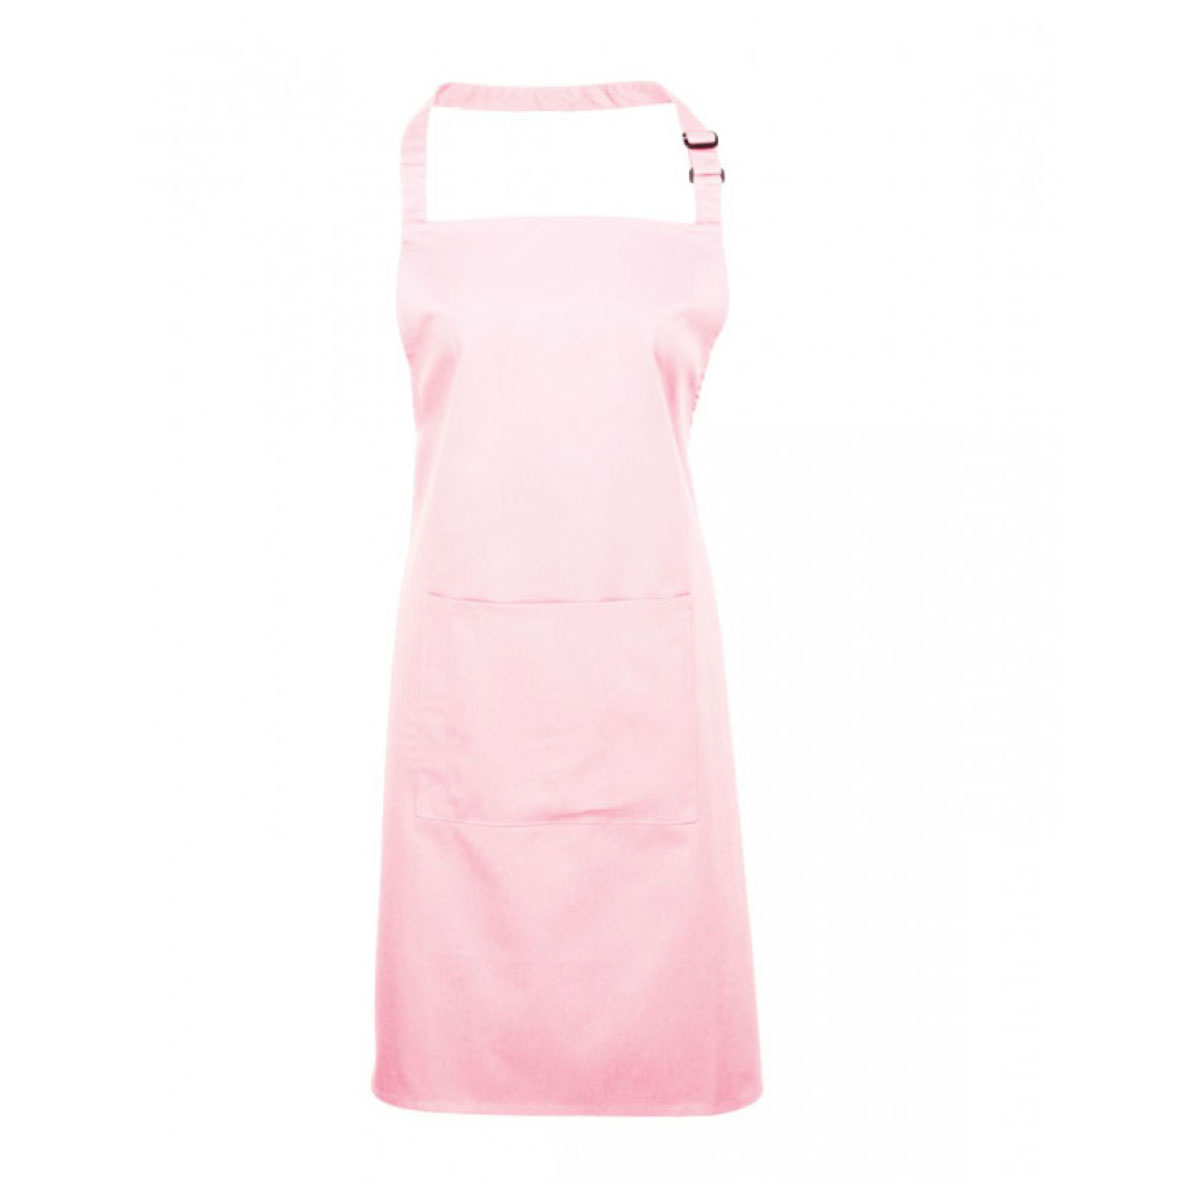 Colours Bib Apron with Pocket - pr154_pink